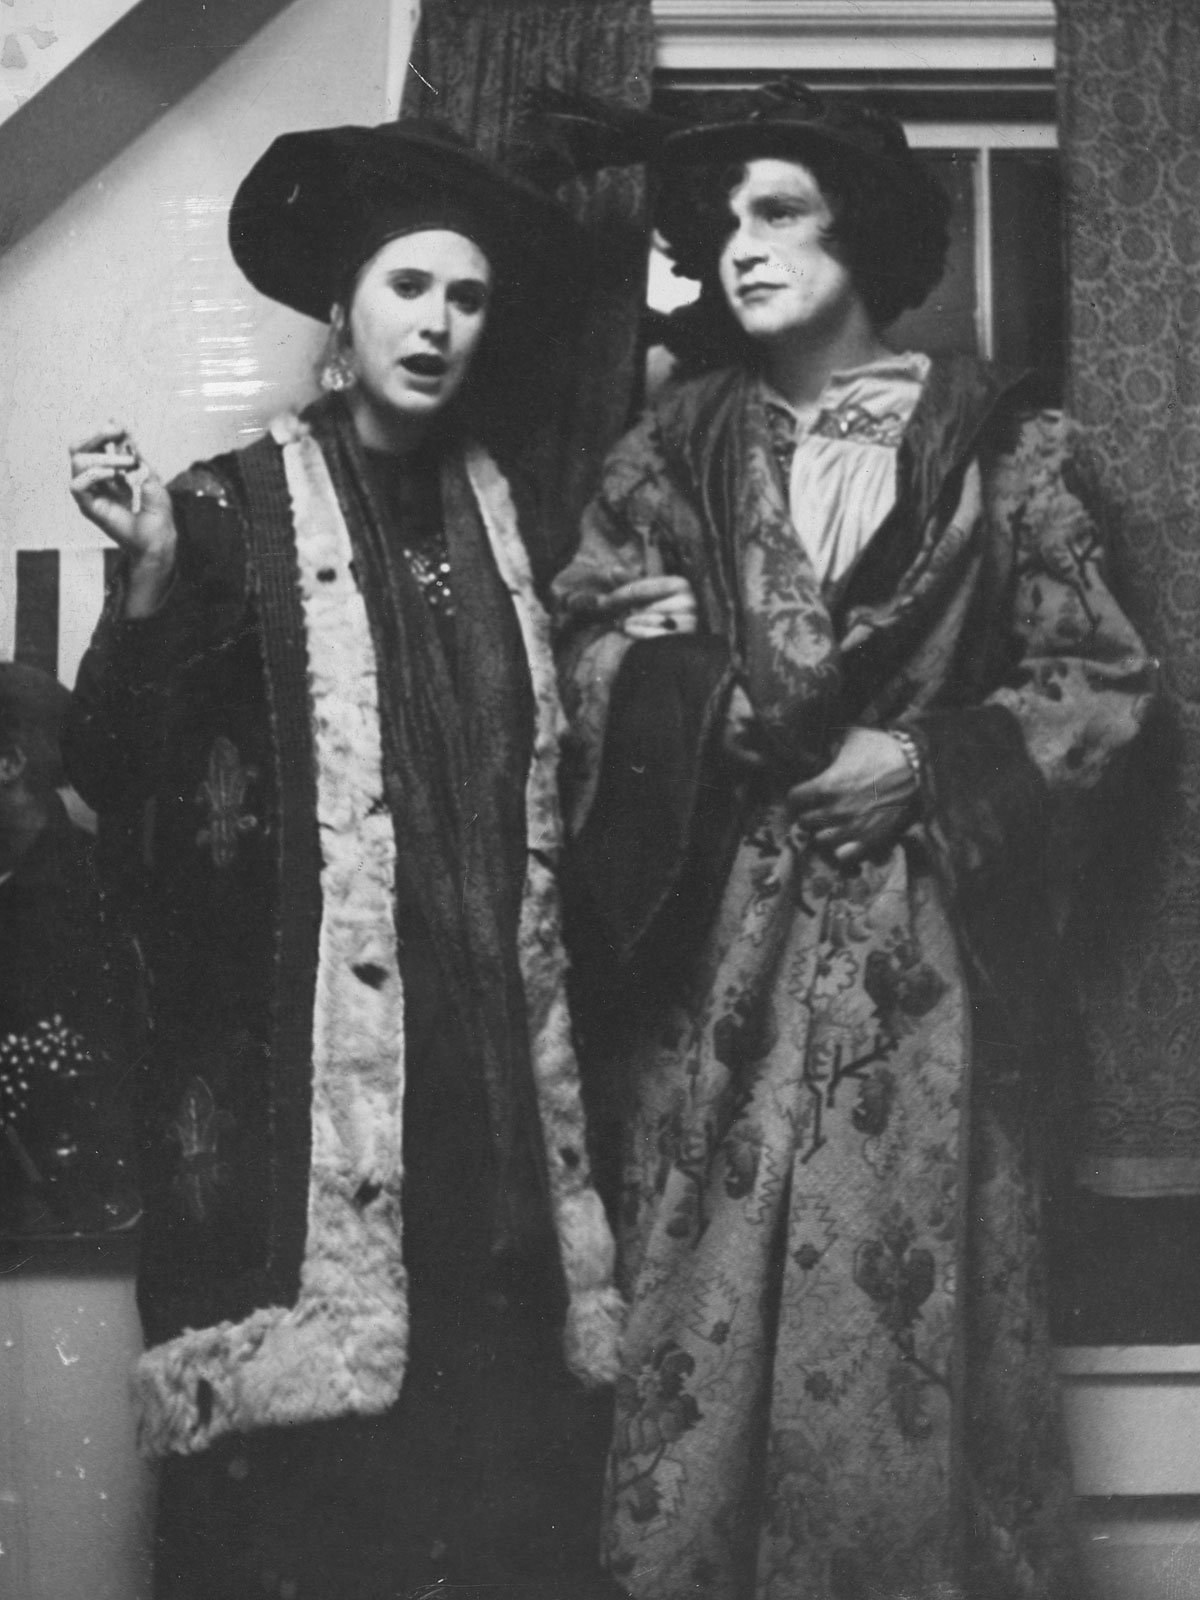 Mary Flower and Jay Schuff in costume